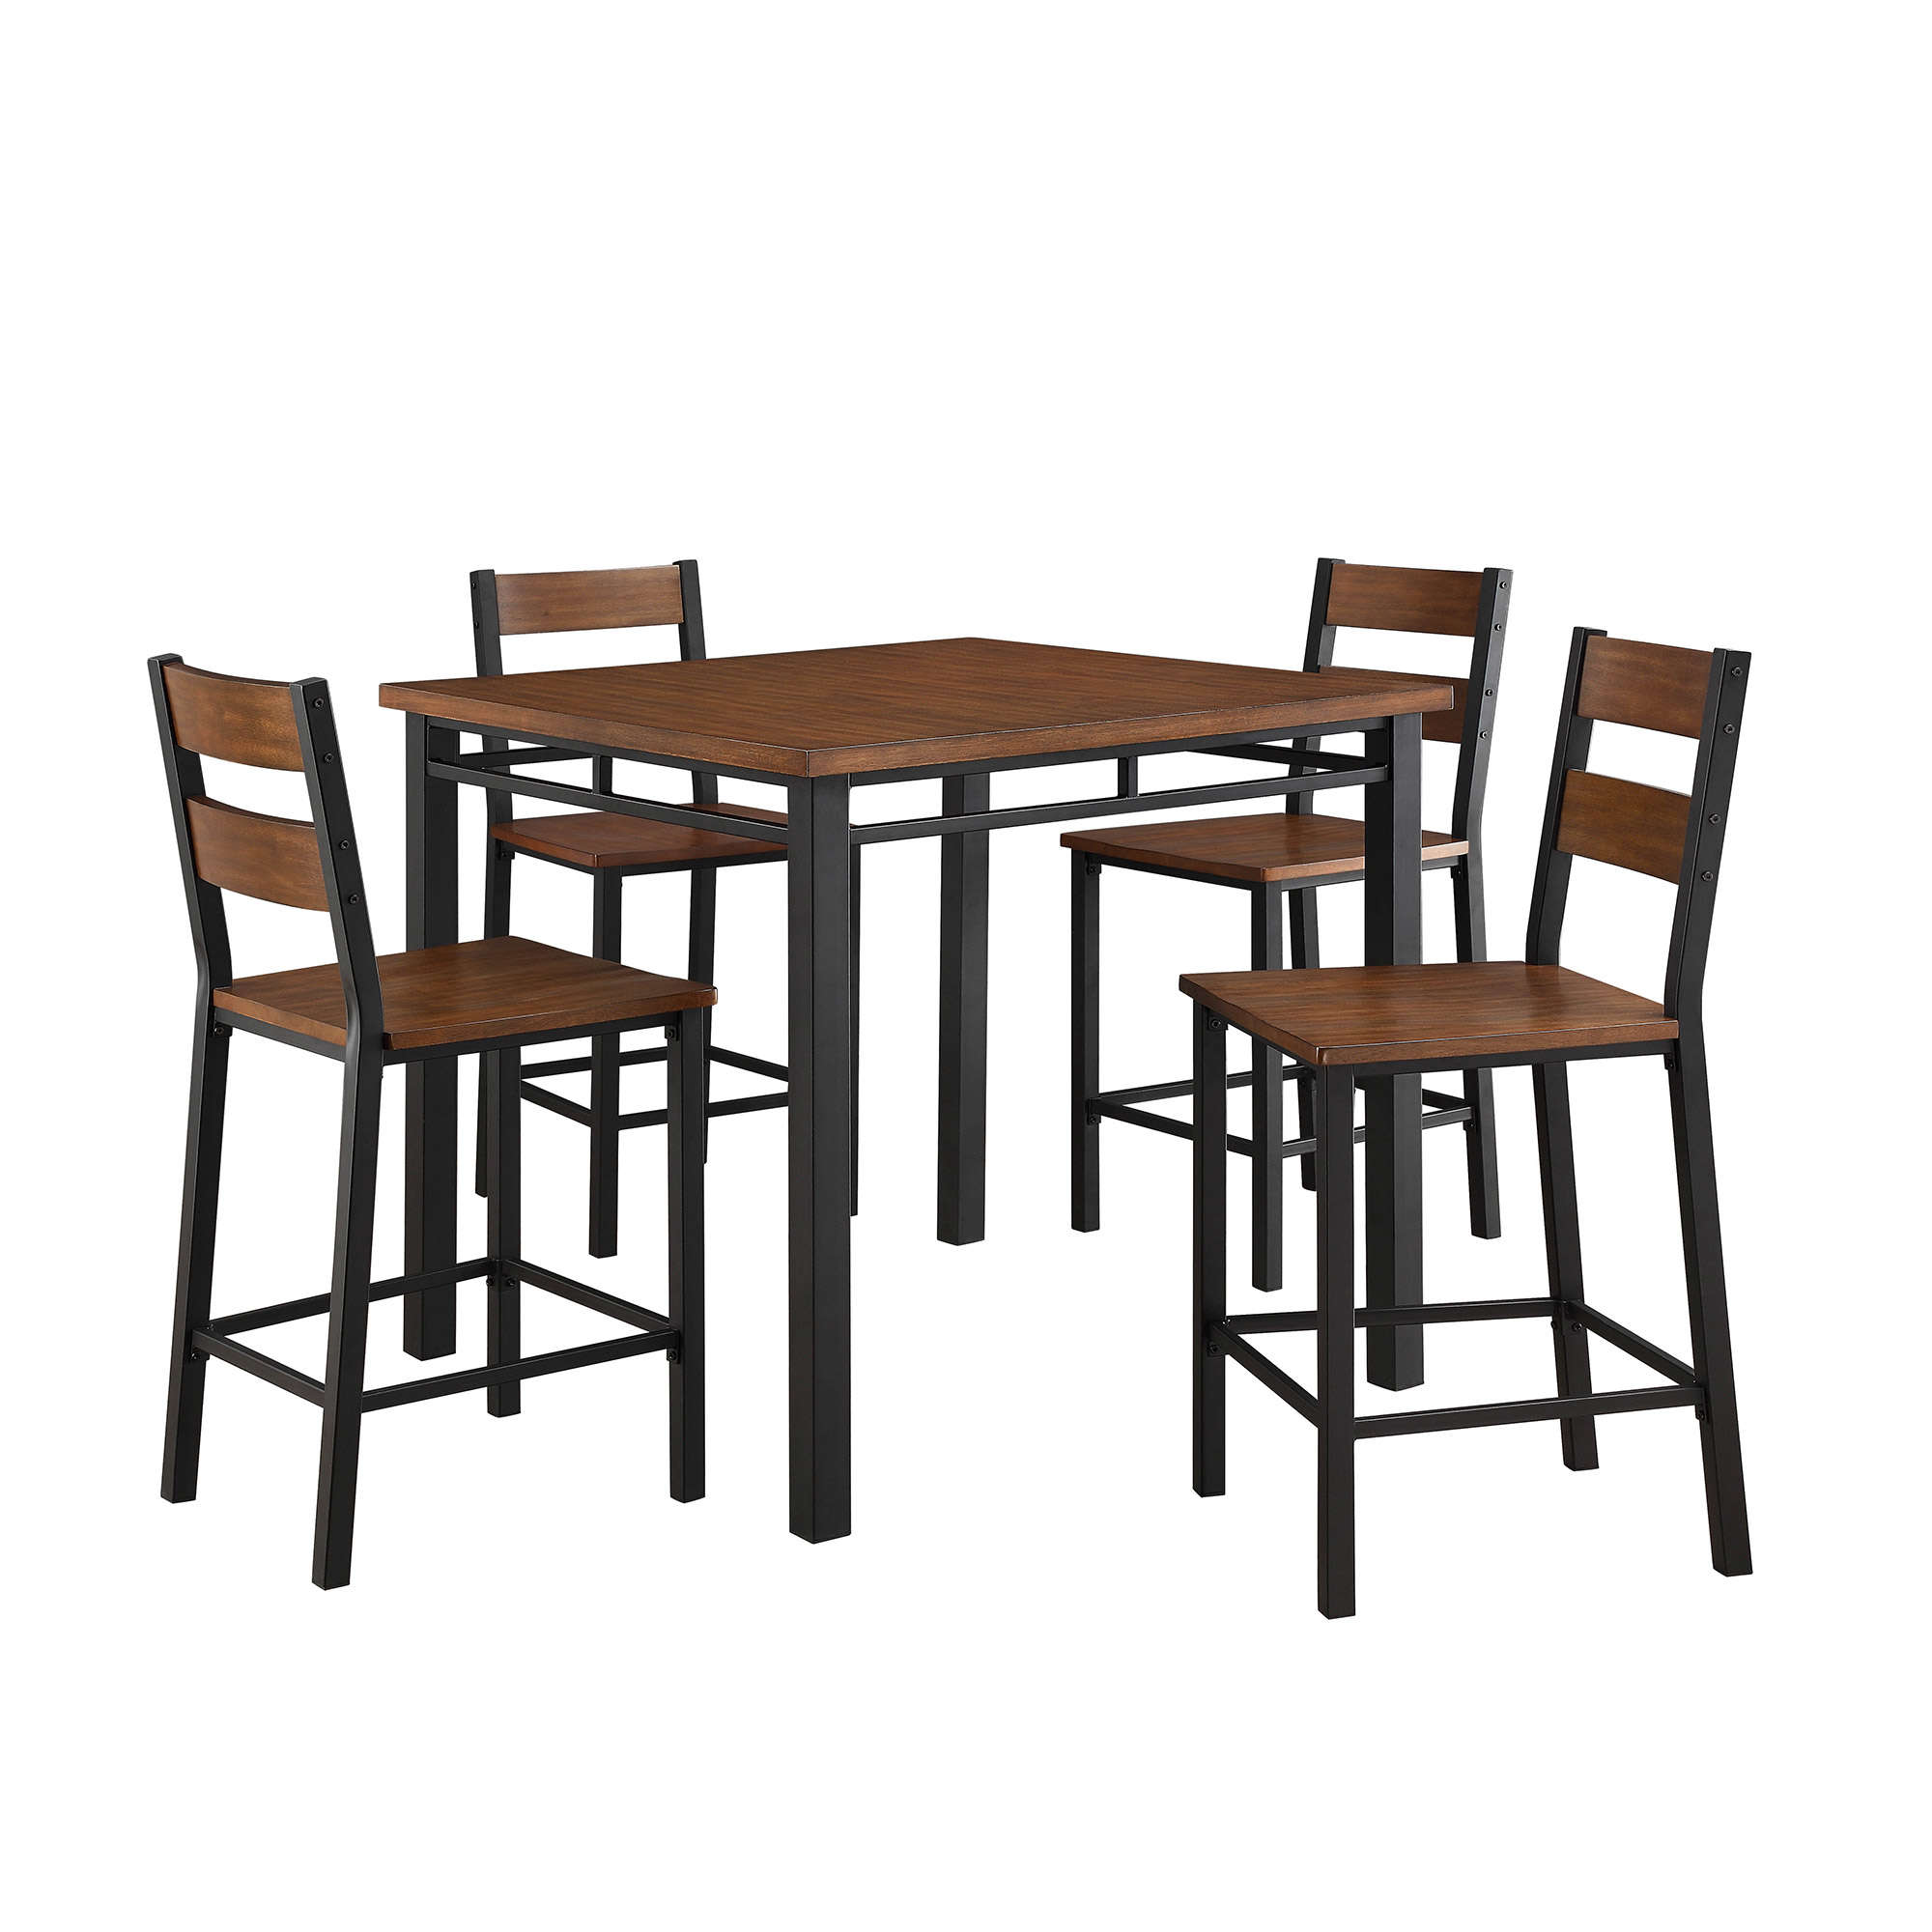 Better Homes & Gardens Mercer 5-Piece Counter Height Dining Set, Includes Table and 4 Chairs, Vintage Oak Finish